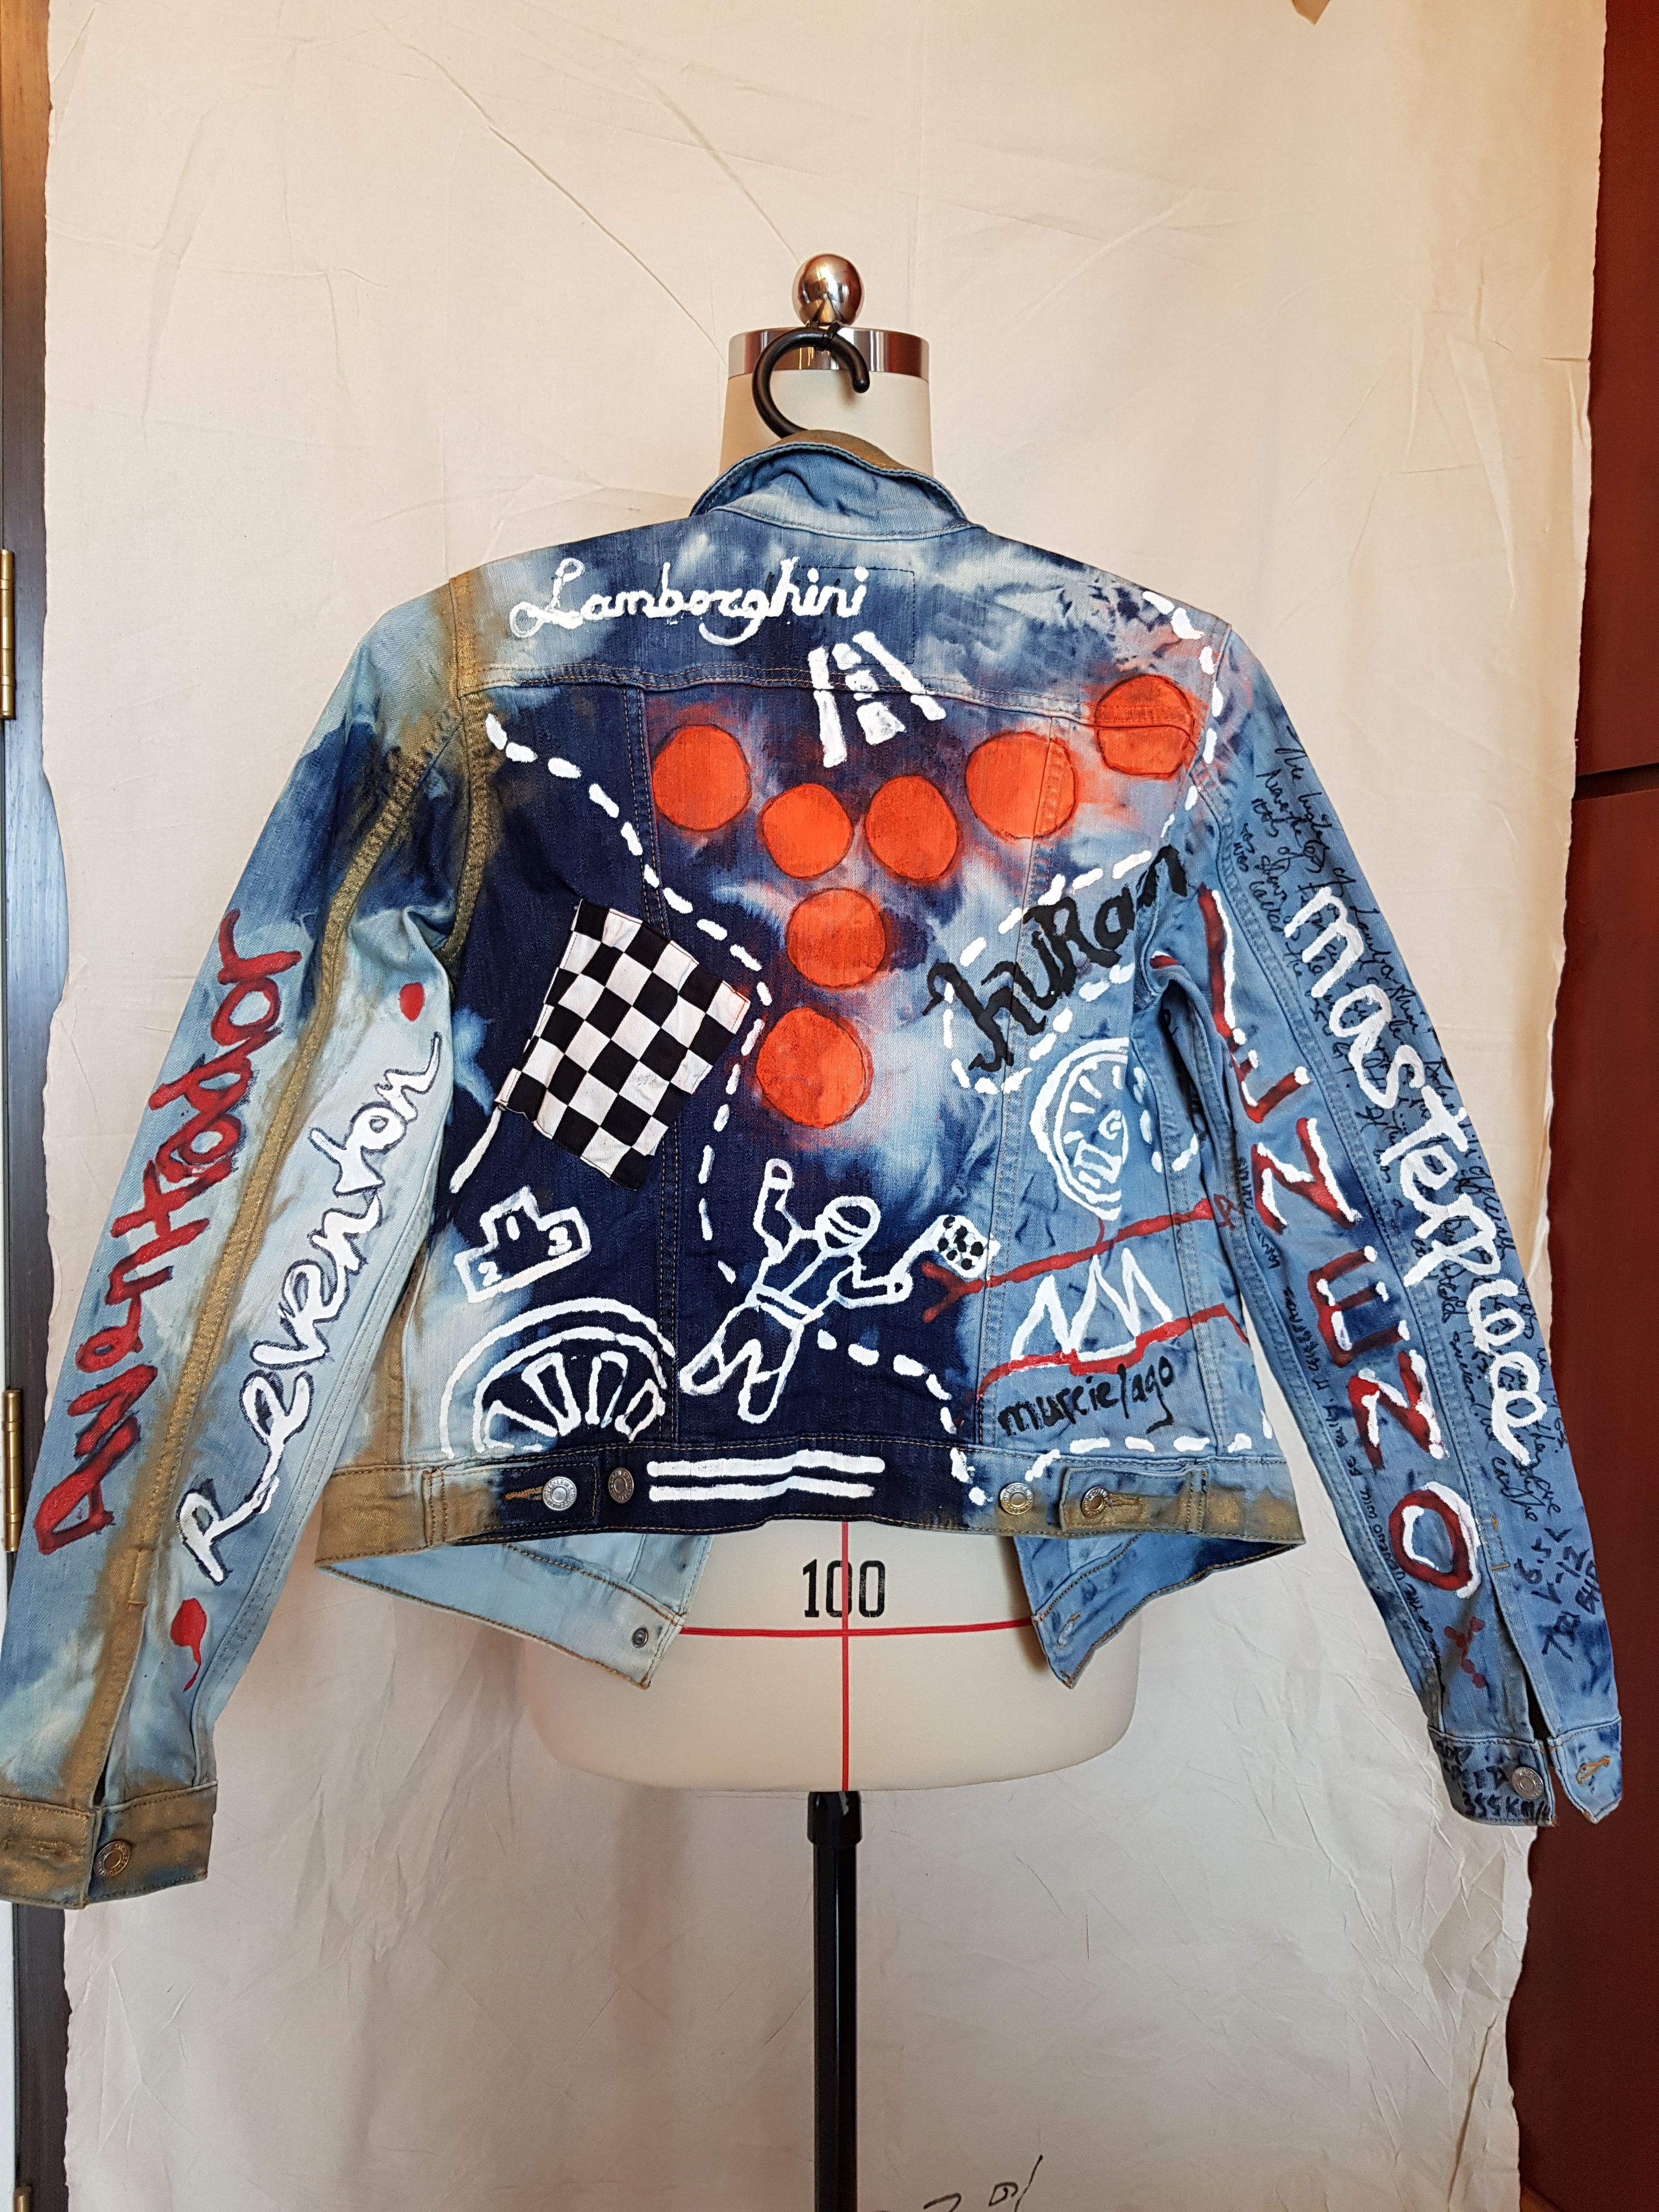 Cross Bleached Denim Jacket Using Spray And Acrylic Paint You Decide The Theme We Make One Of A Kind Graffit Painted Denim Jacket Denim Design Denim Fashion [ 4032 x 3024 Pixel ]